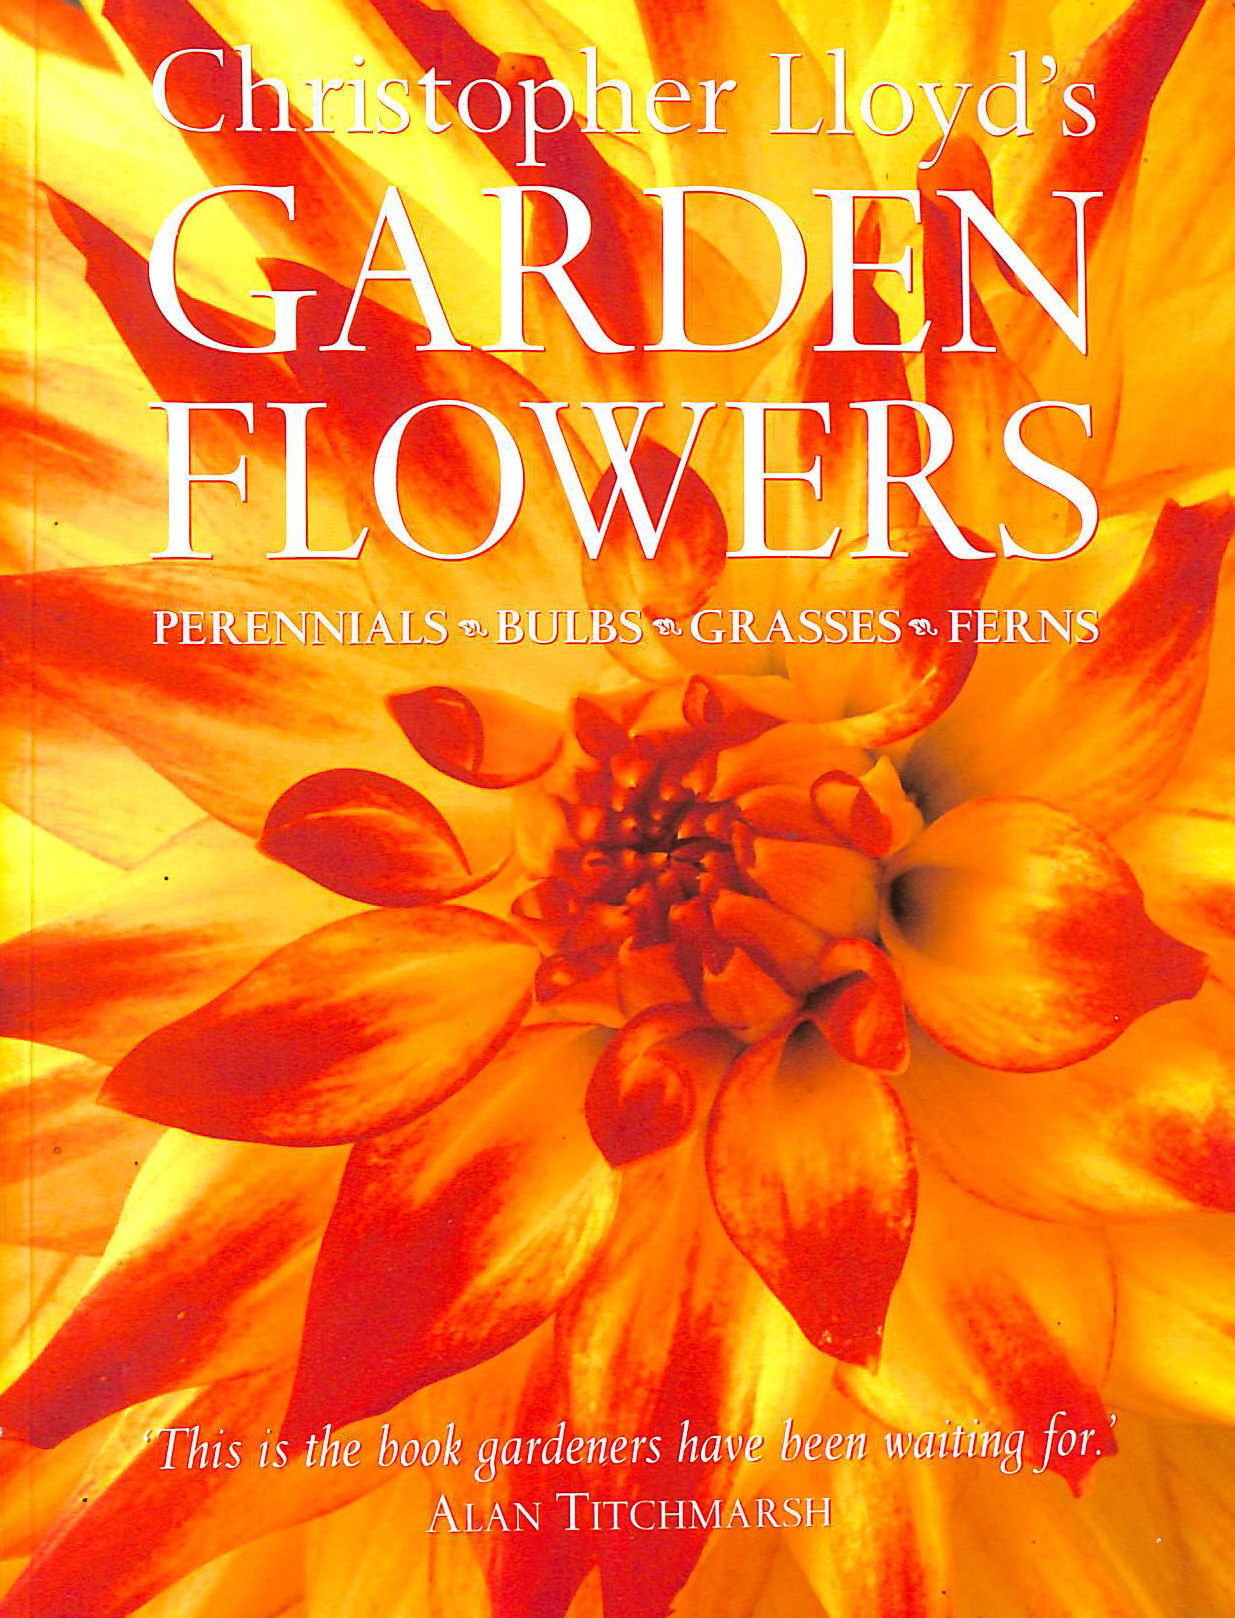 Image for Christopher Lloyd's Garden Flowers